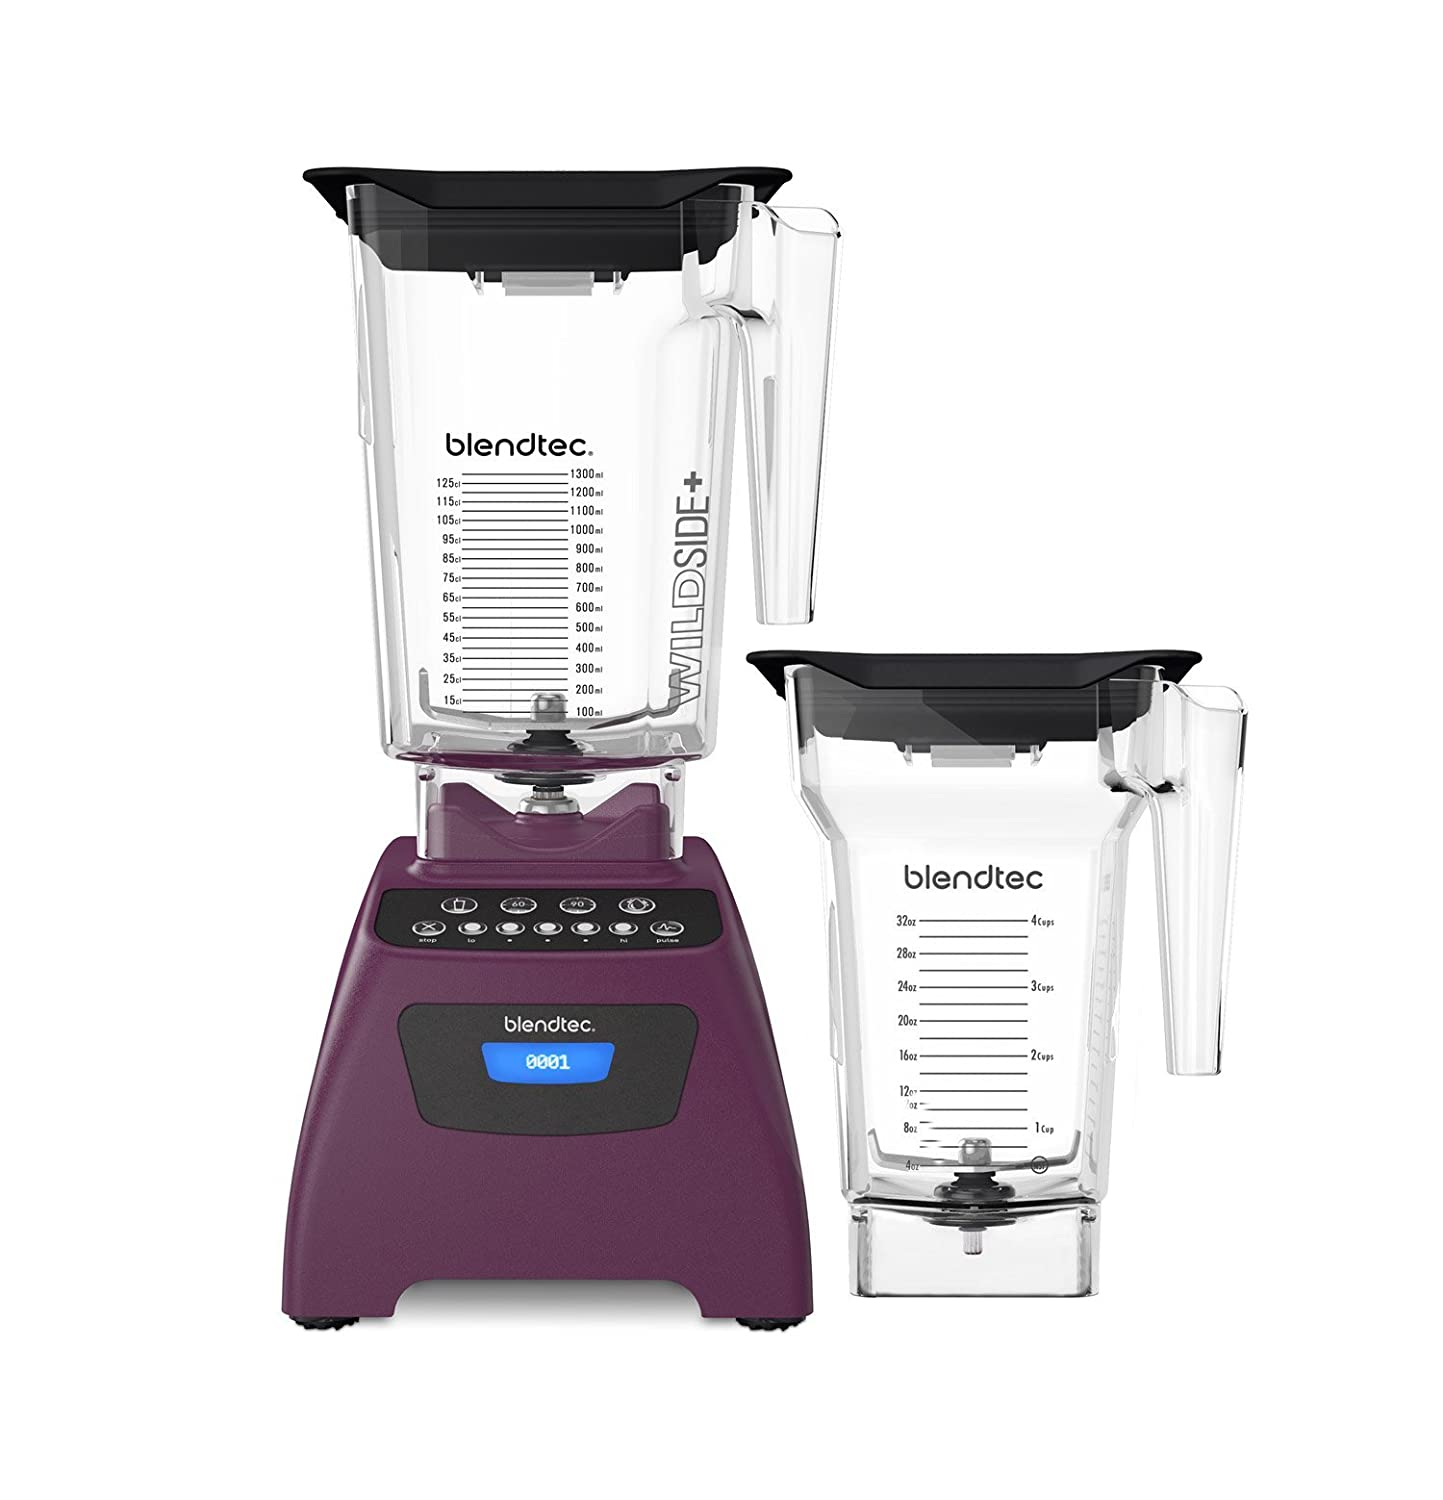 Blendtec Classic 575 Blender with Wildside+ Jar (90 oz) and FourSide Jar (75 oz) BUNDLE, Professional-Grade Power, Self-Cleaning, 4 Pre-programmed Cycles, 5-Speeds, Black, C575A2301A-AMAZON